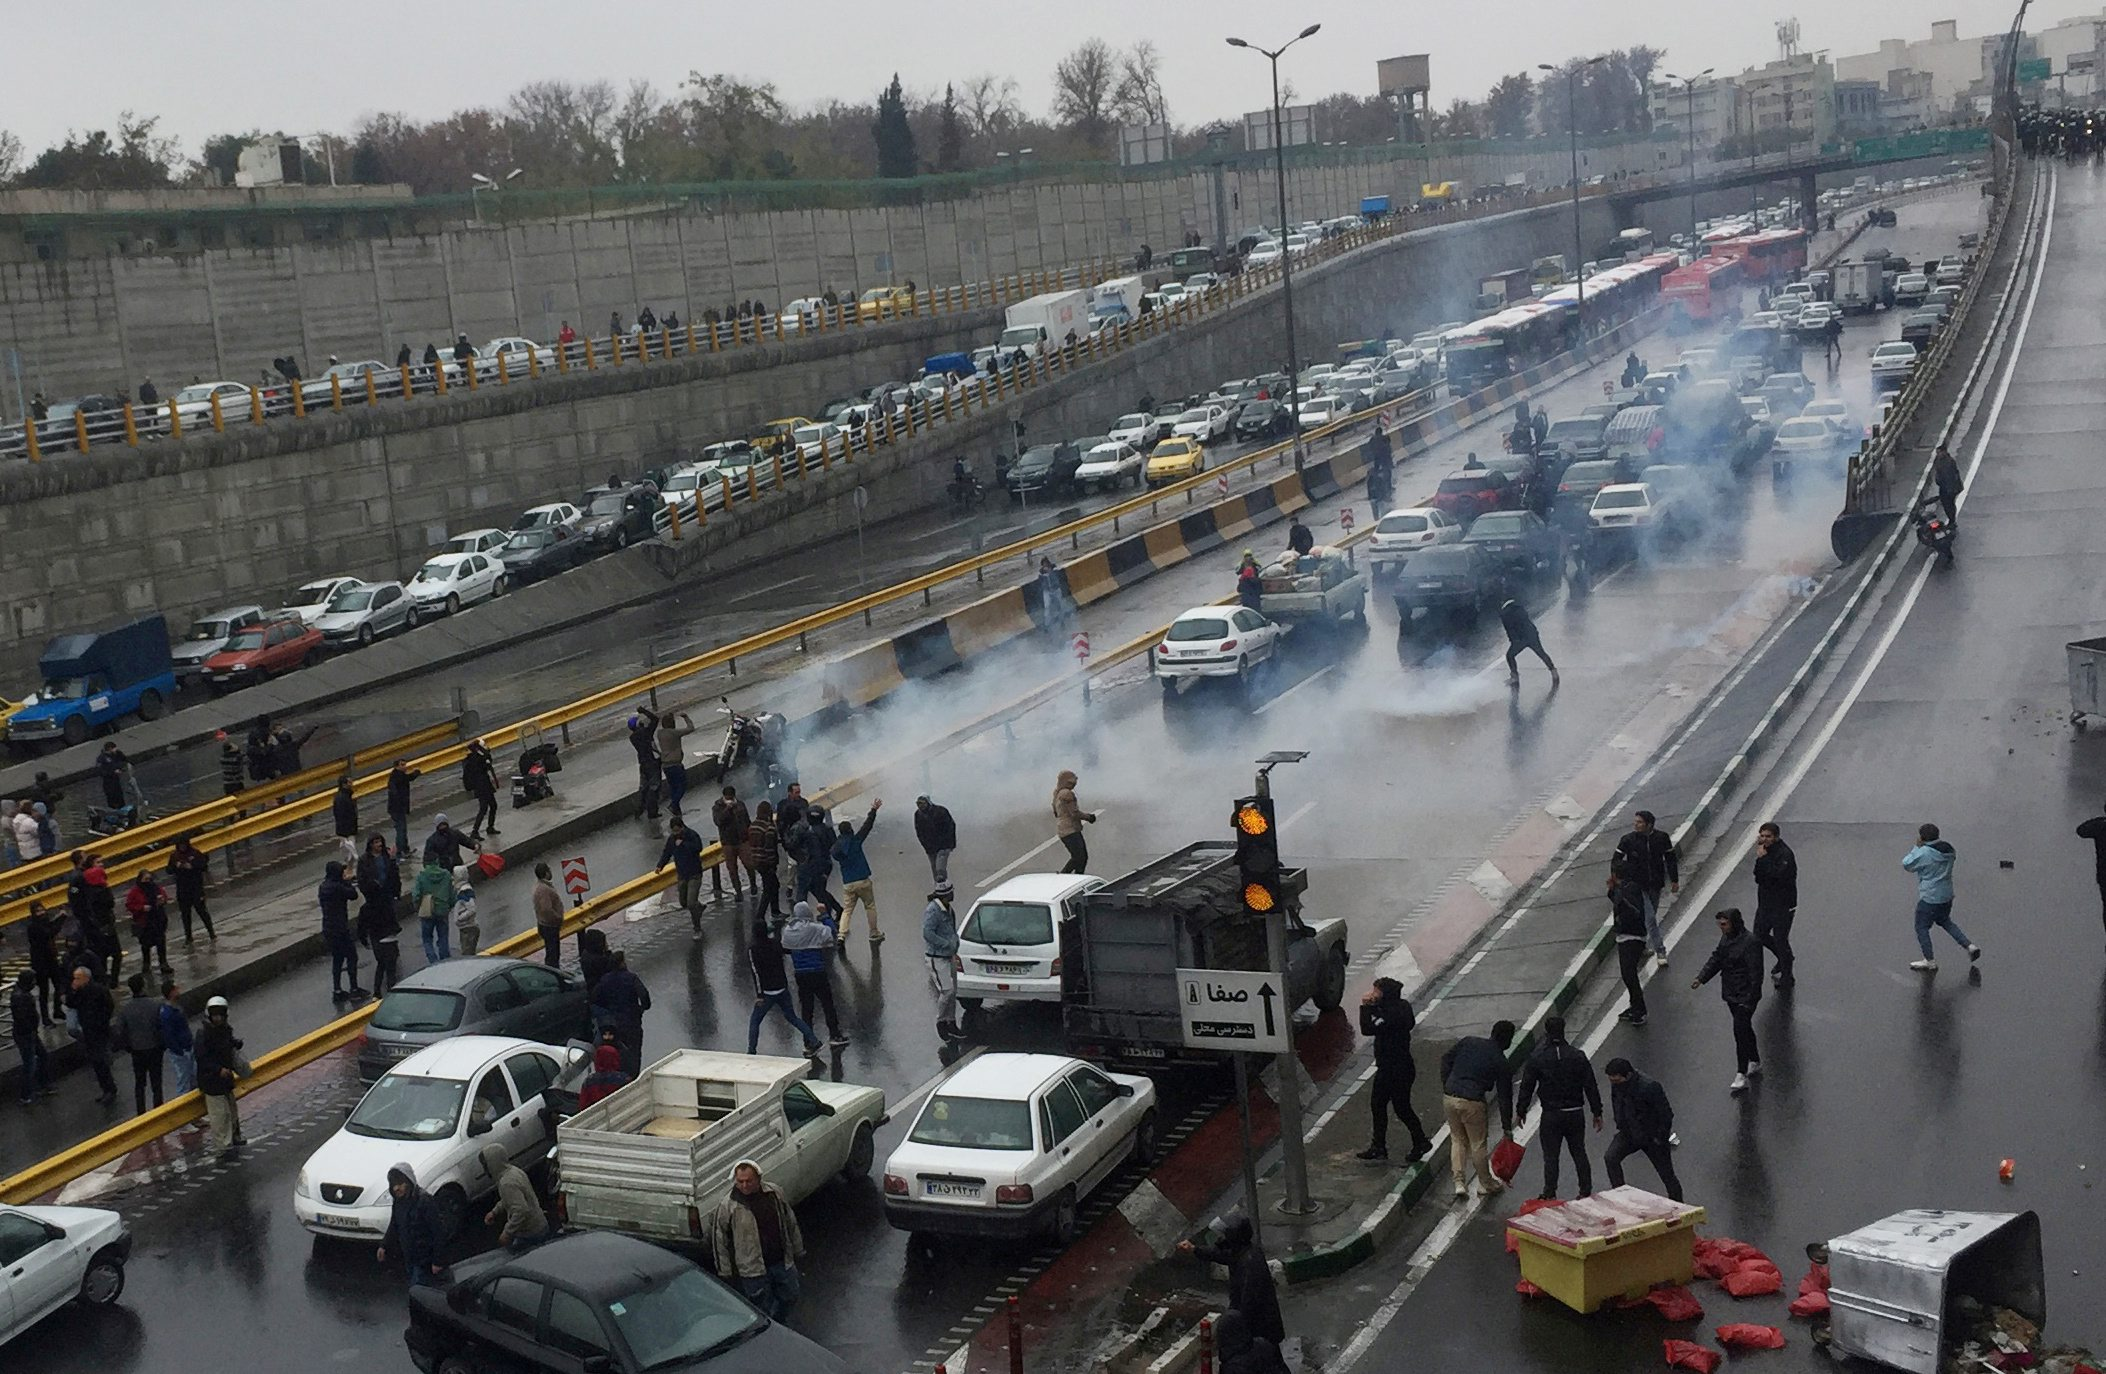 2019-11-16T132448Z_1269611006_RC2CCD9U8A39_RTRMADP_3_IRAN-FUEL-PROTESTS